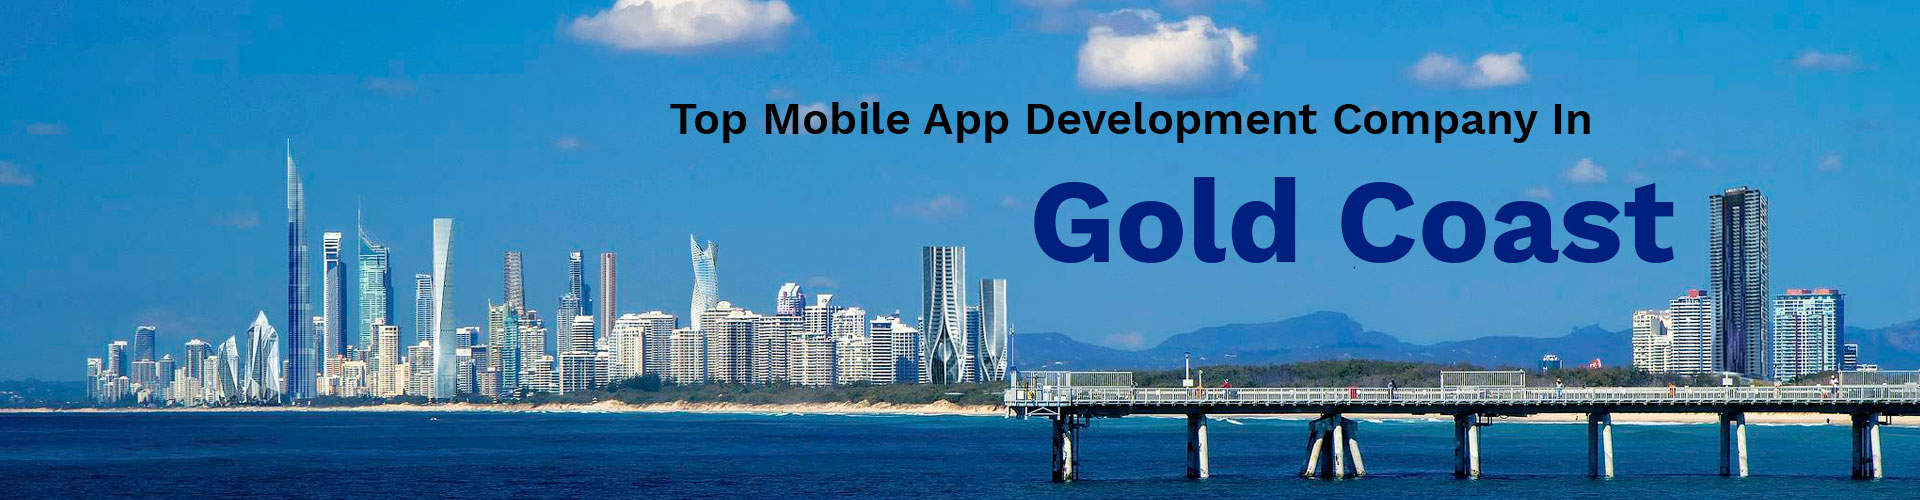 mobile app development company gold coast